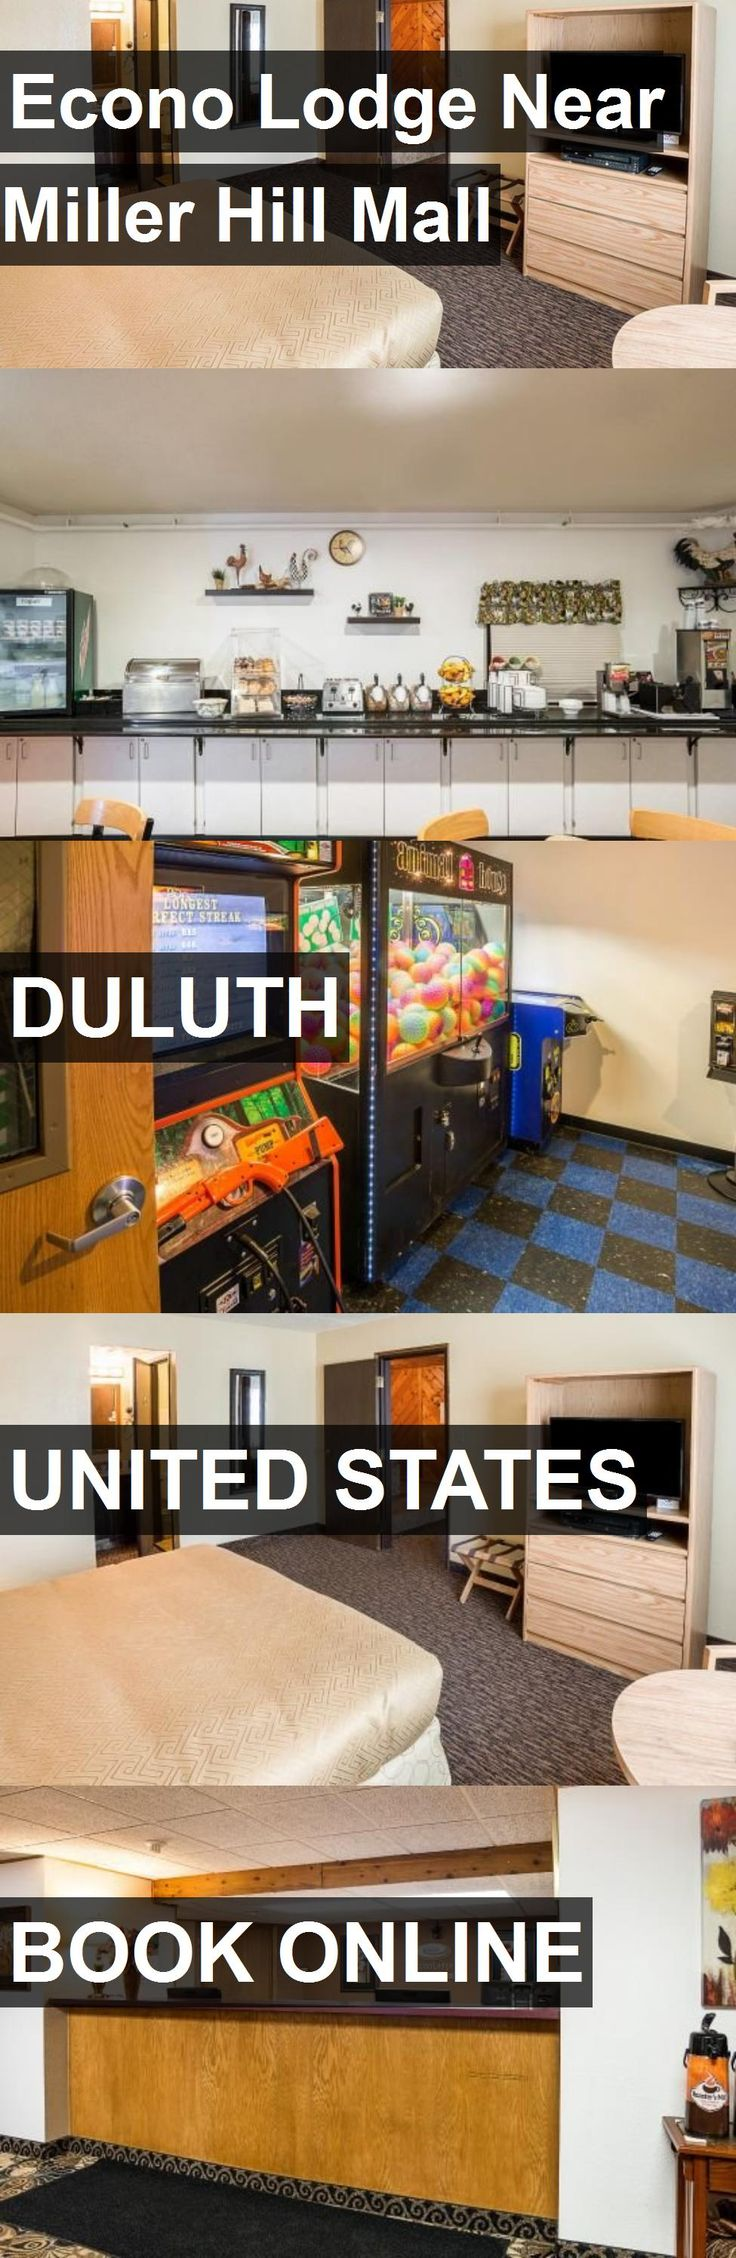 Hotel Econo Lodge Near Miller Hill Mall in Duluth, United States. For more information, photos, reviews and best prices please follow the link. #UnitedStates #Duluth #travel #vacation #hotel